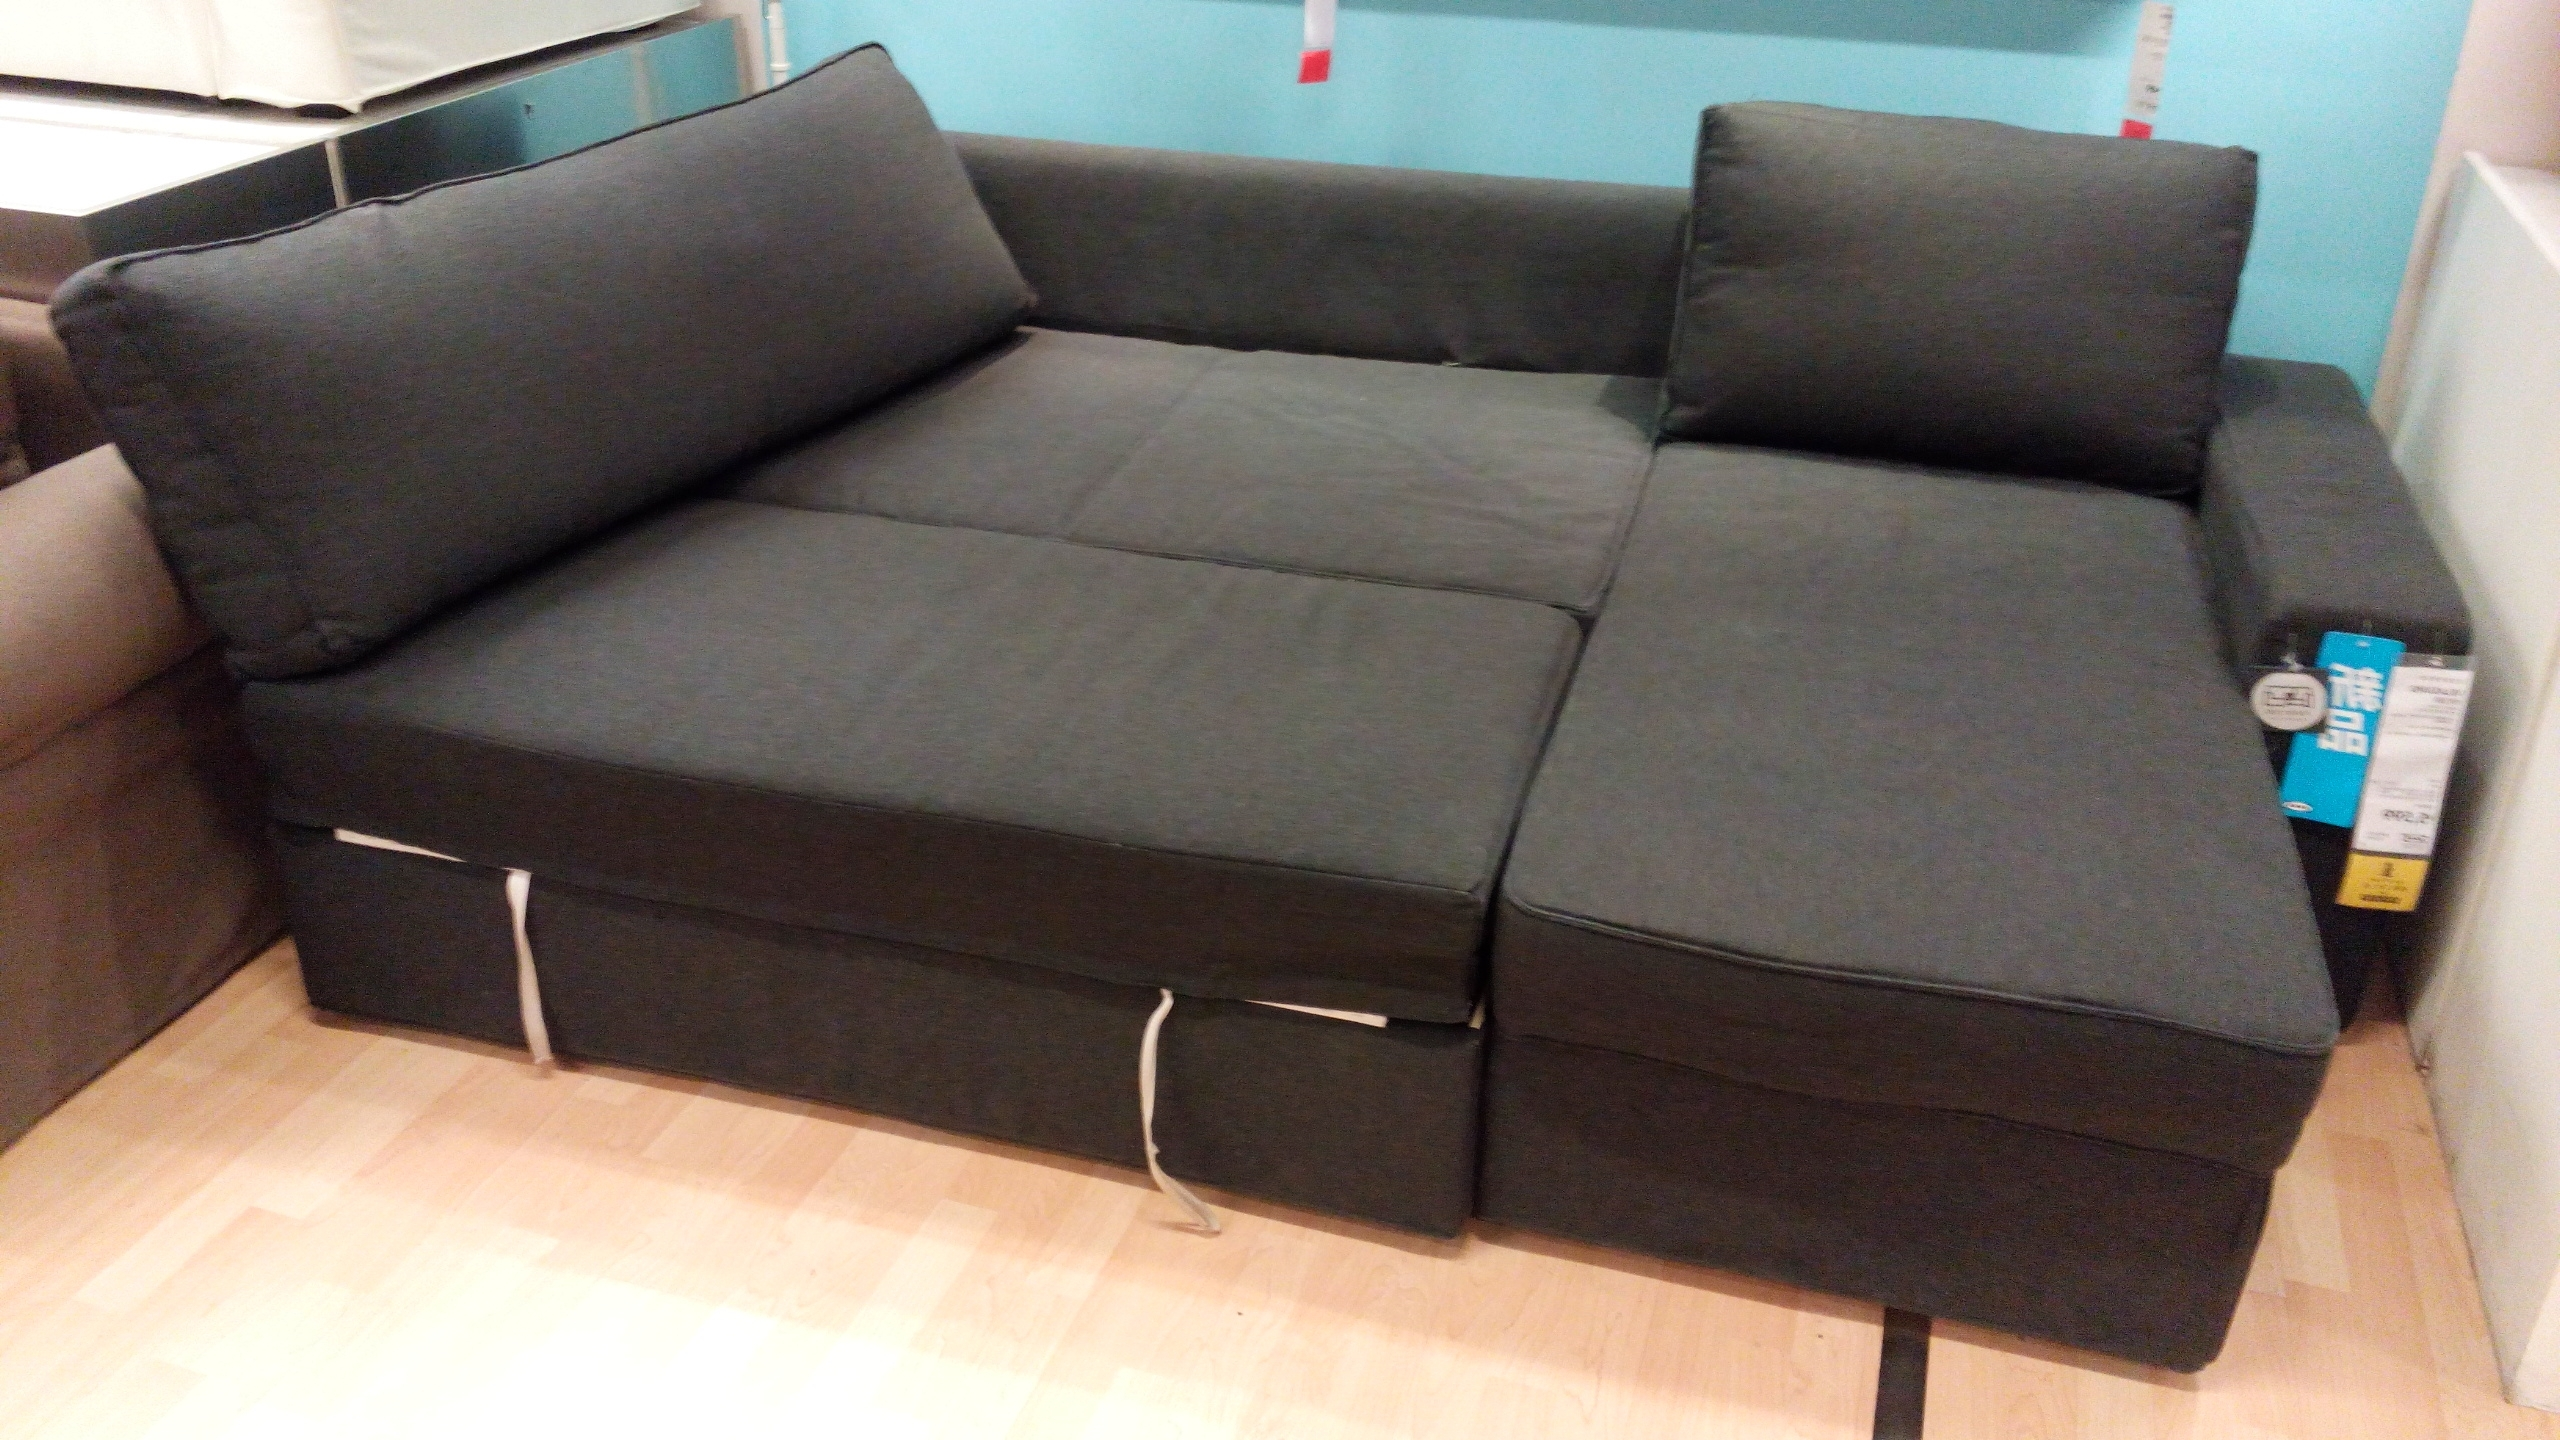 Trendy Chesterfield Chair : Chaise Lounge Sleeper Leather Sofa Bed Pertaining To Chaise Lounge Sleepers (View 14 of 15)